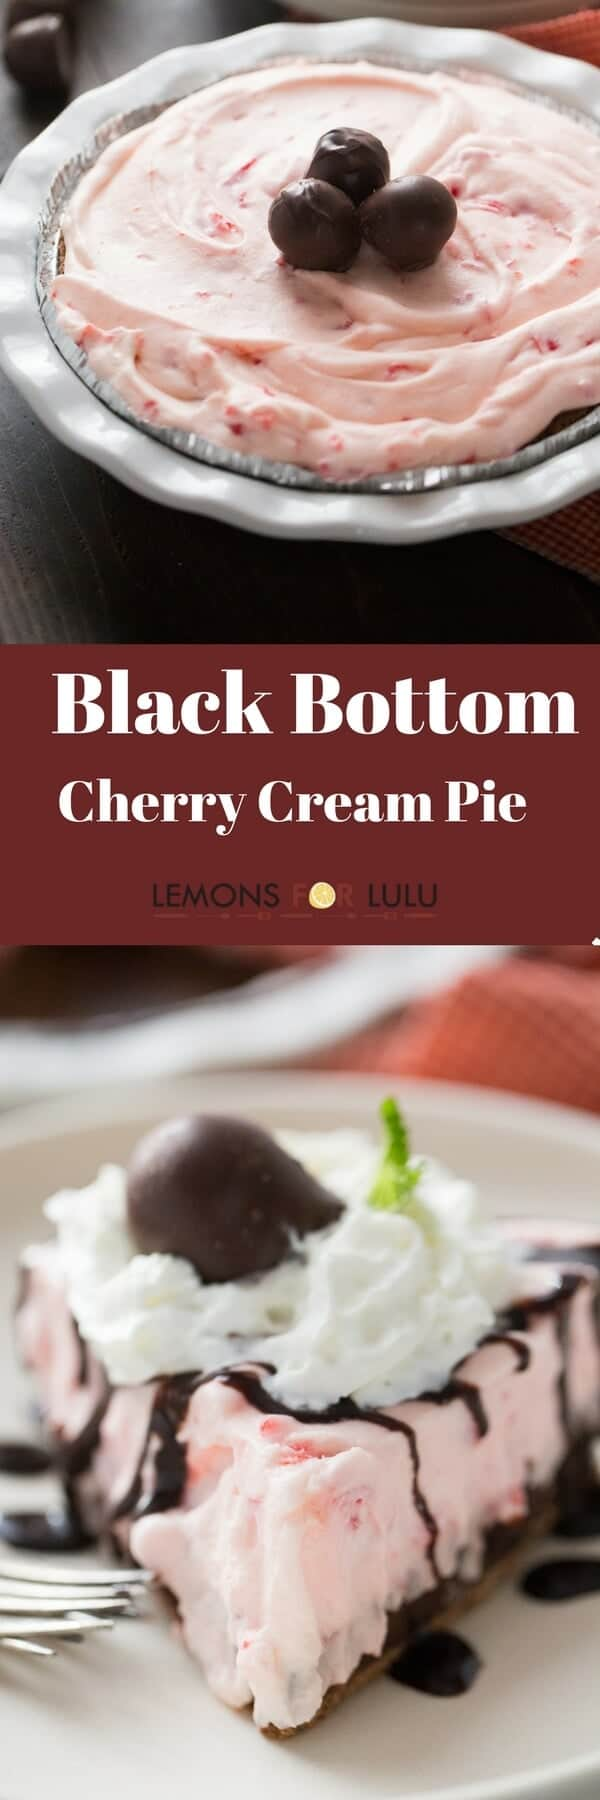 Something amazing happnes when you bite into this cherry cream pie! Each bite is filled with a rich, fluffy and sweet cherry filling as well as a smooth chocolate layer. This is where chocolate covered cherries meet pie!